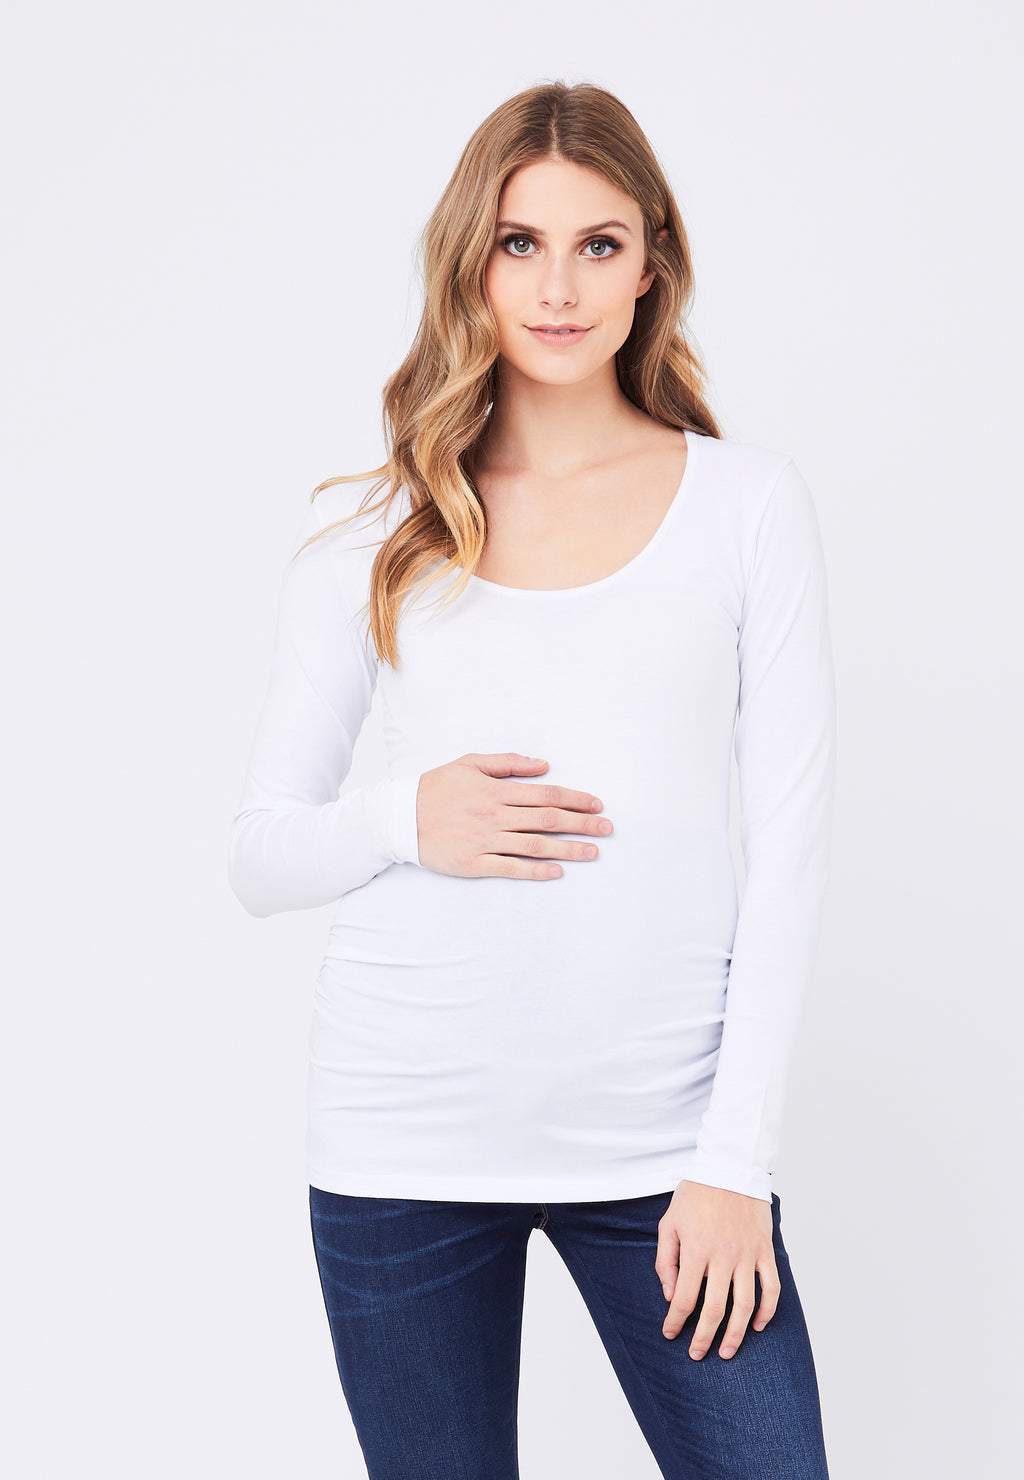 Maternity clothing Canada. Nursing tops Canada, affordable breastfeeding clothing Ripe Maternity clothes Canada